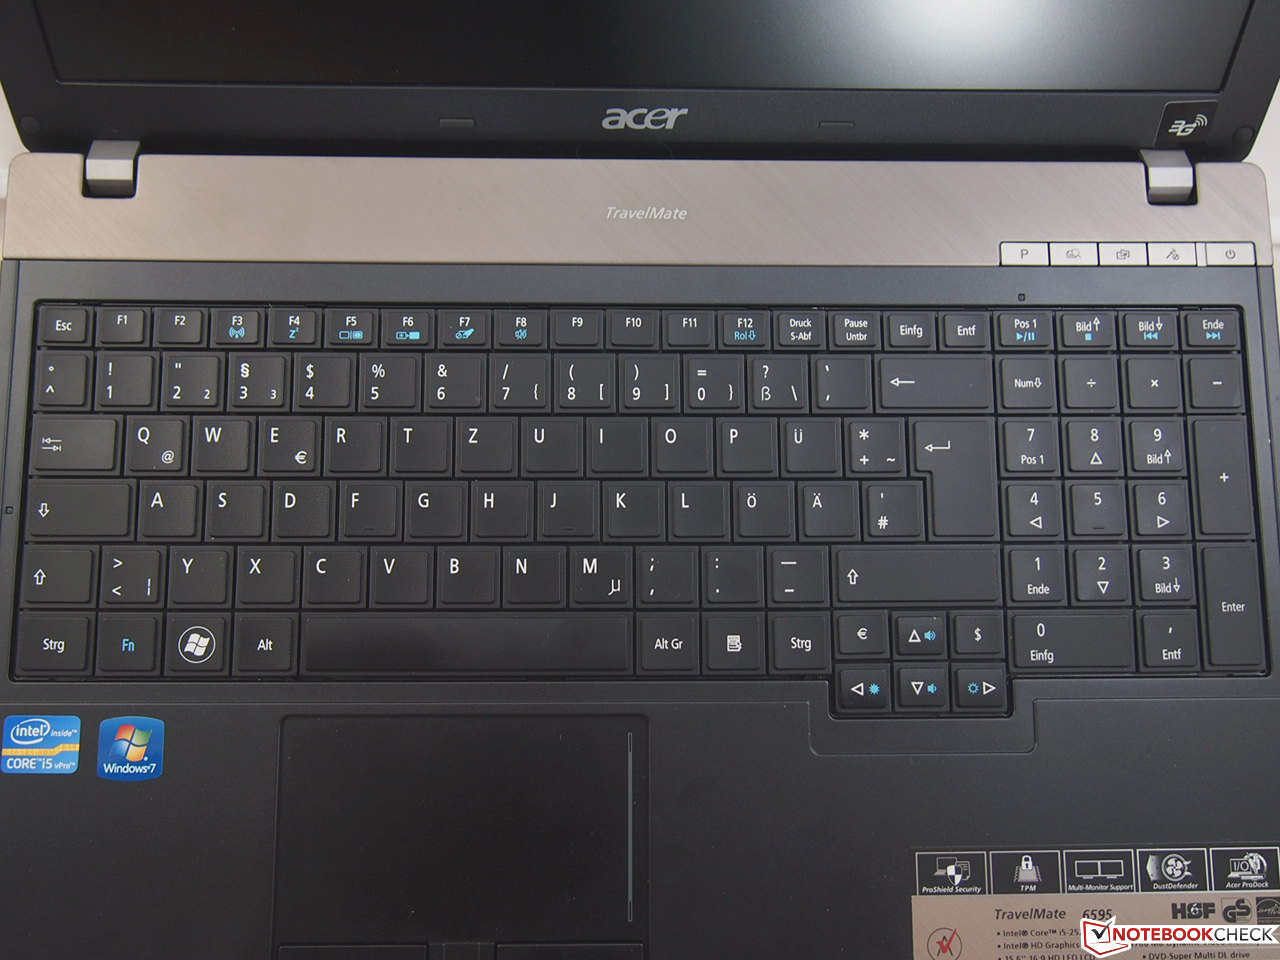 Download Driver: Acer TravelMate 6595T Synaptics Touchpad